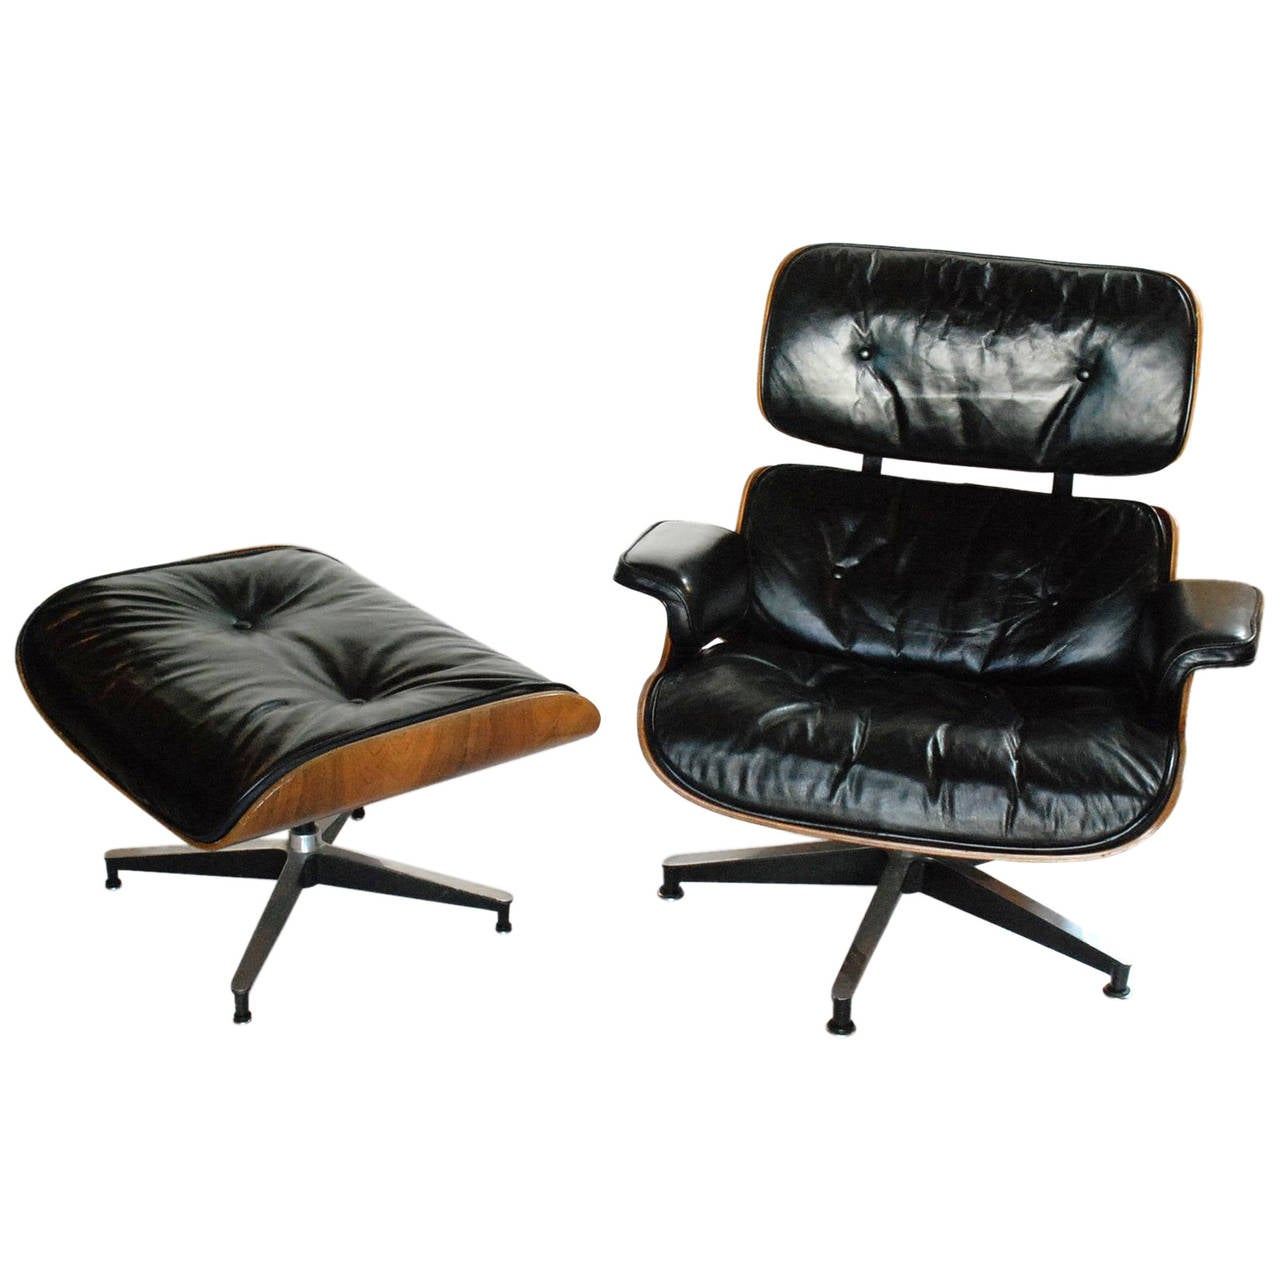 Original eames chair - Early Original Eames Lounge 670 671 Armchair And Ottoman